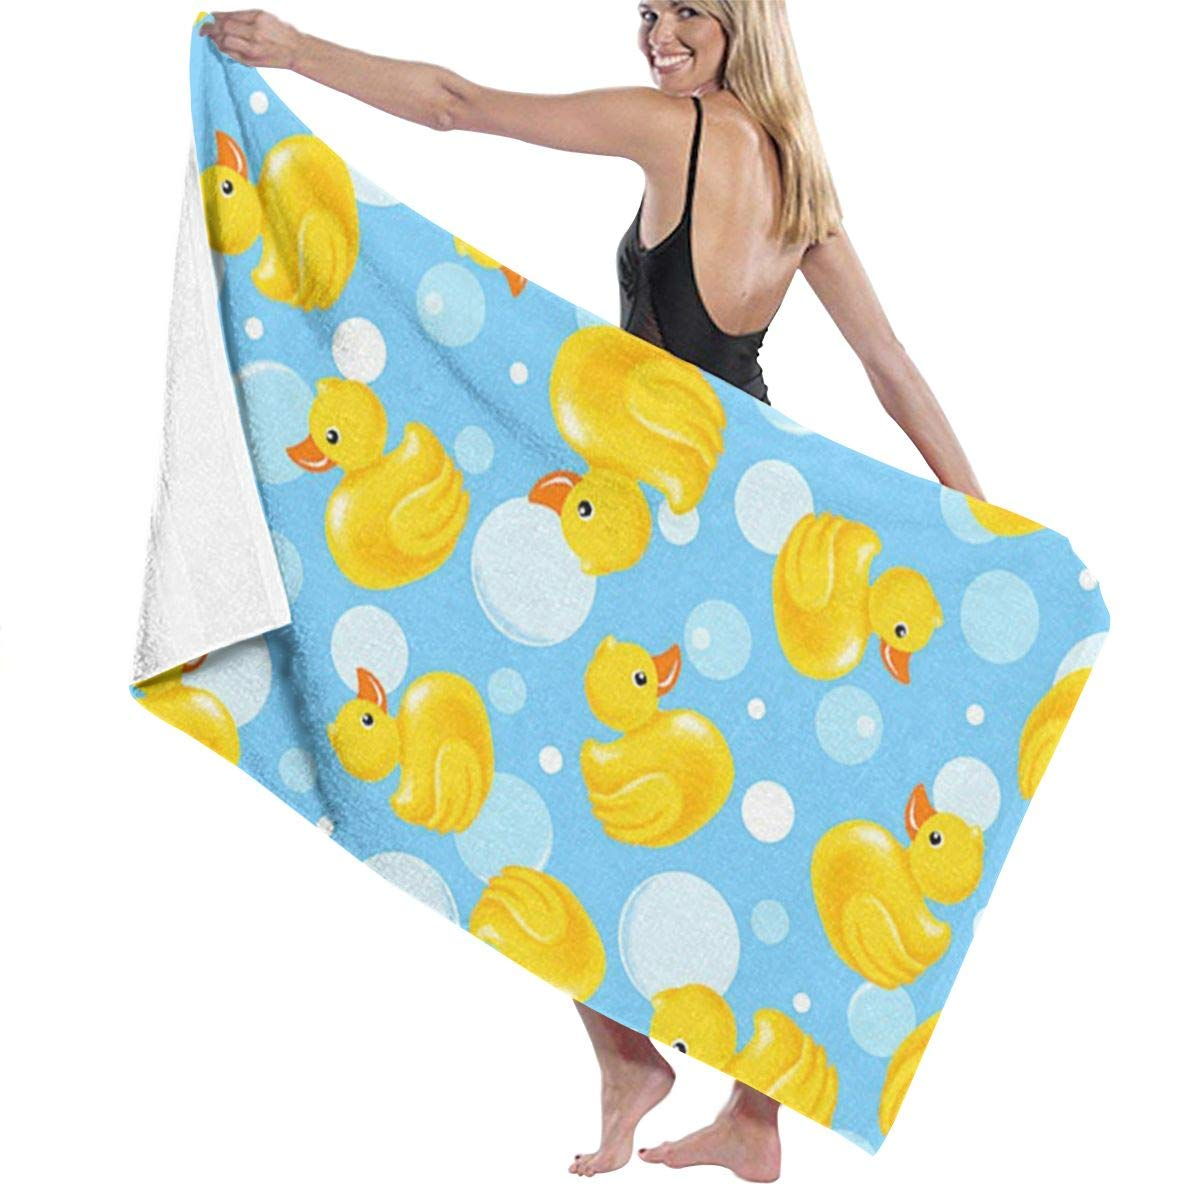 Ultra Soft 100% Polyester Cotton Bath Towels Yellow Rubber Duck Quick Dry Wash Cloths Hand Towel Body Towel Bath Sheets, Machine Washable Highly Absorbent Bath Sheets